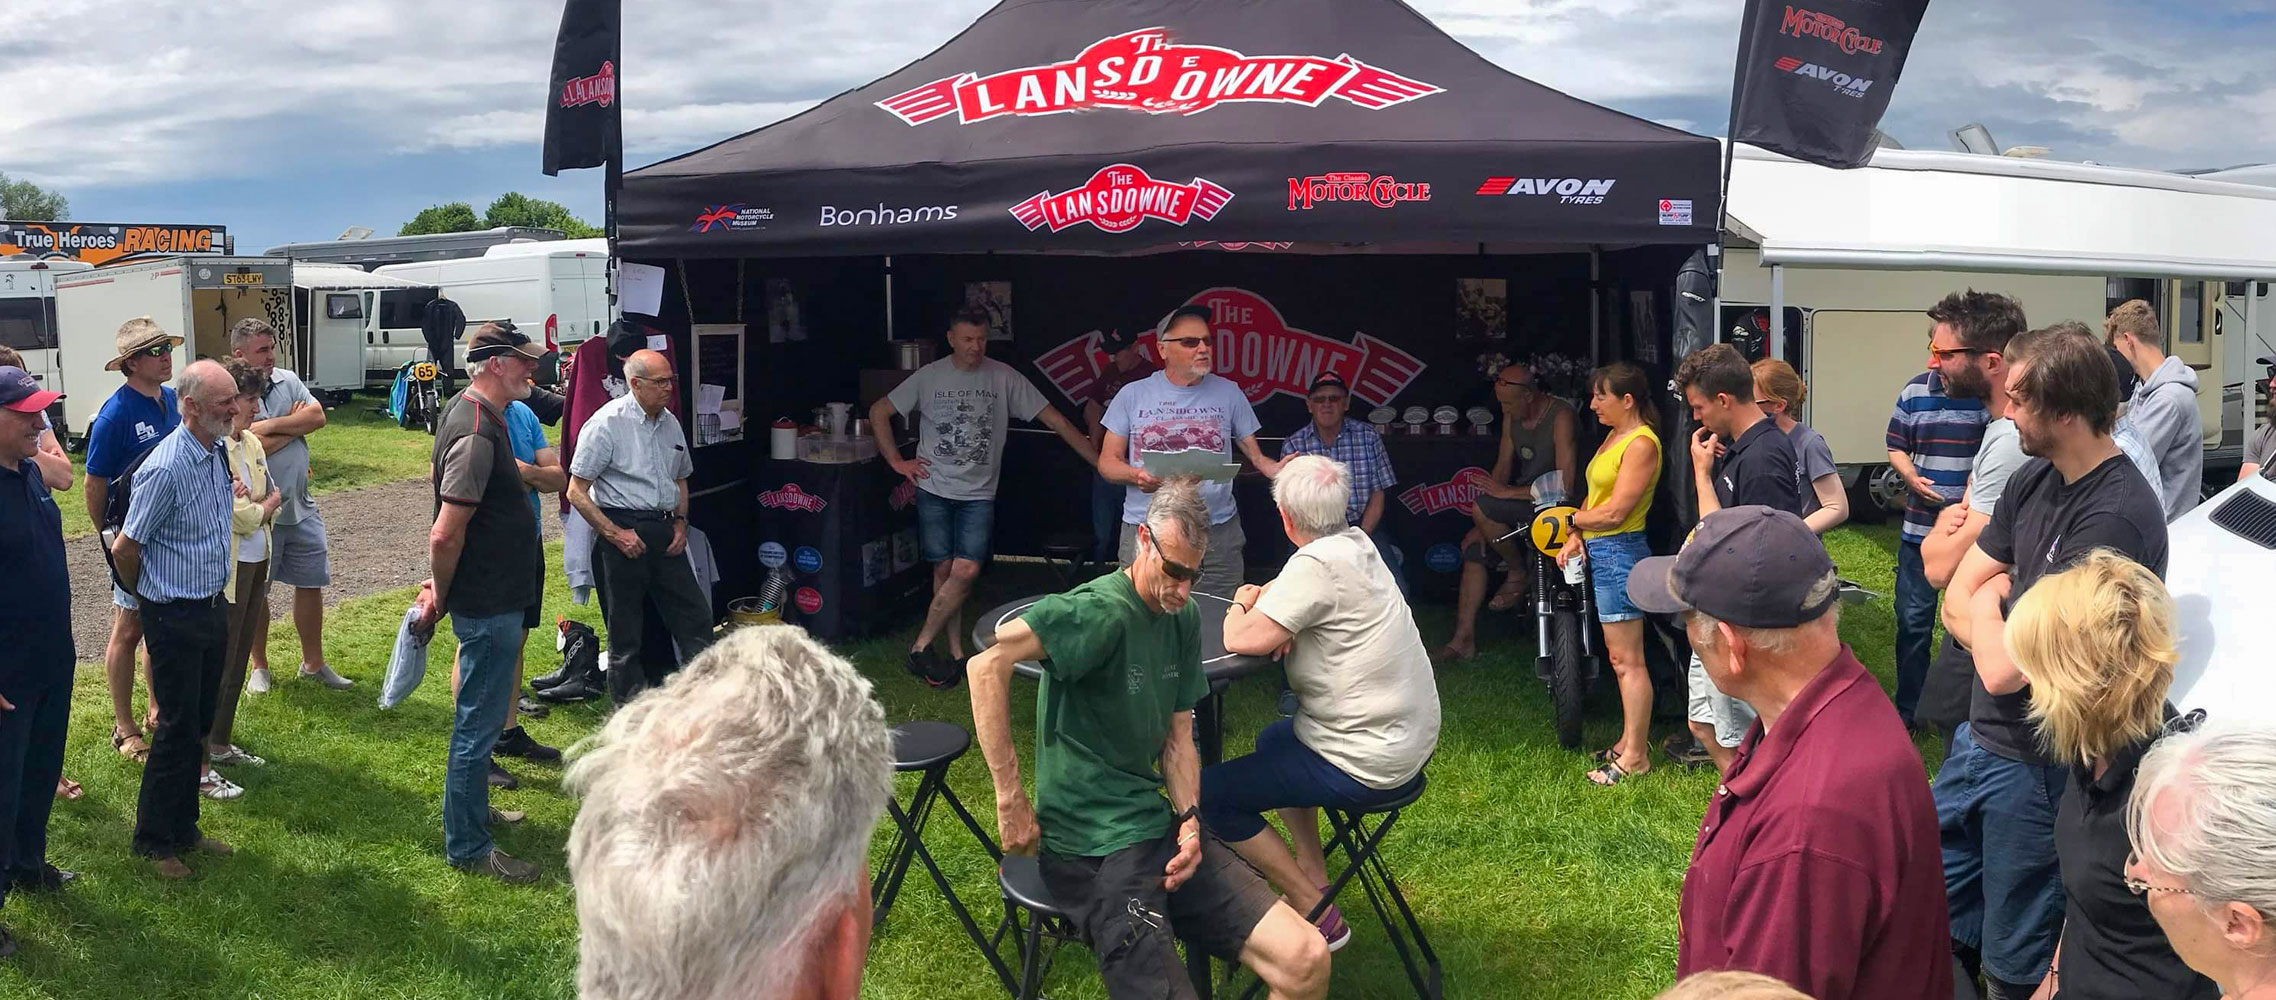 The Lansdowne prize giving at Cadwell Park